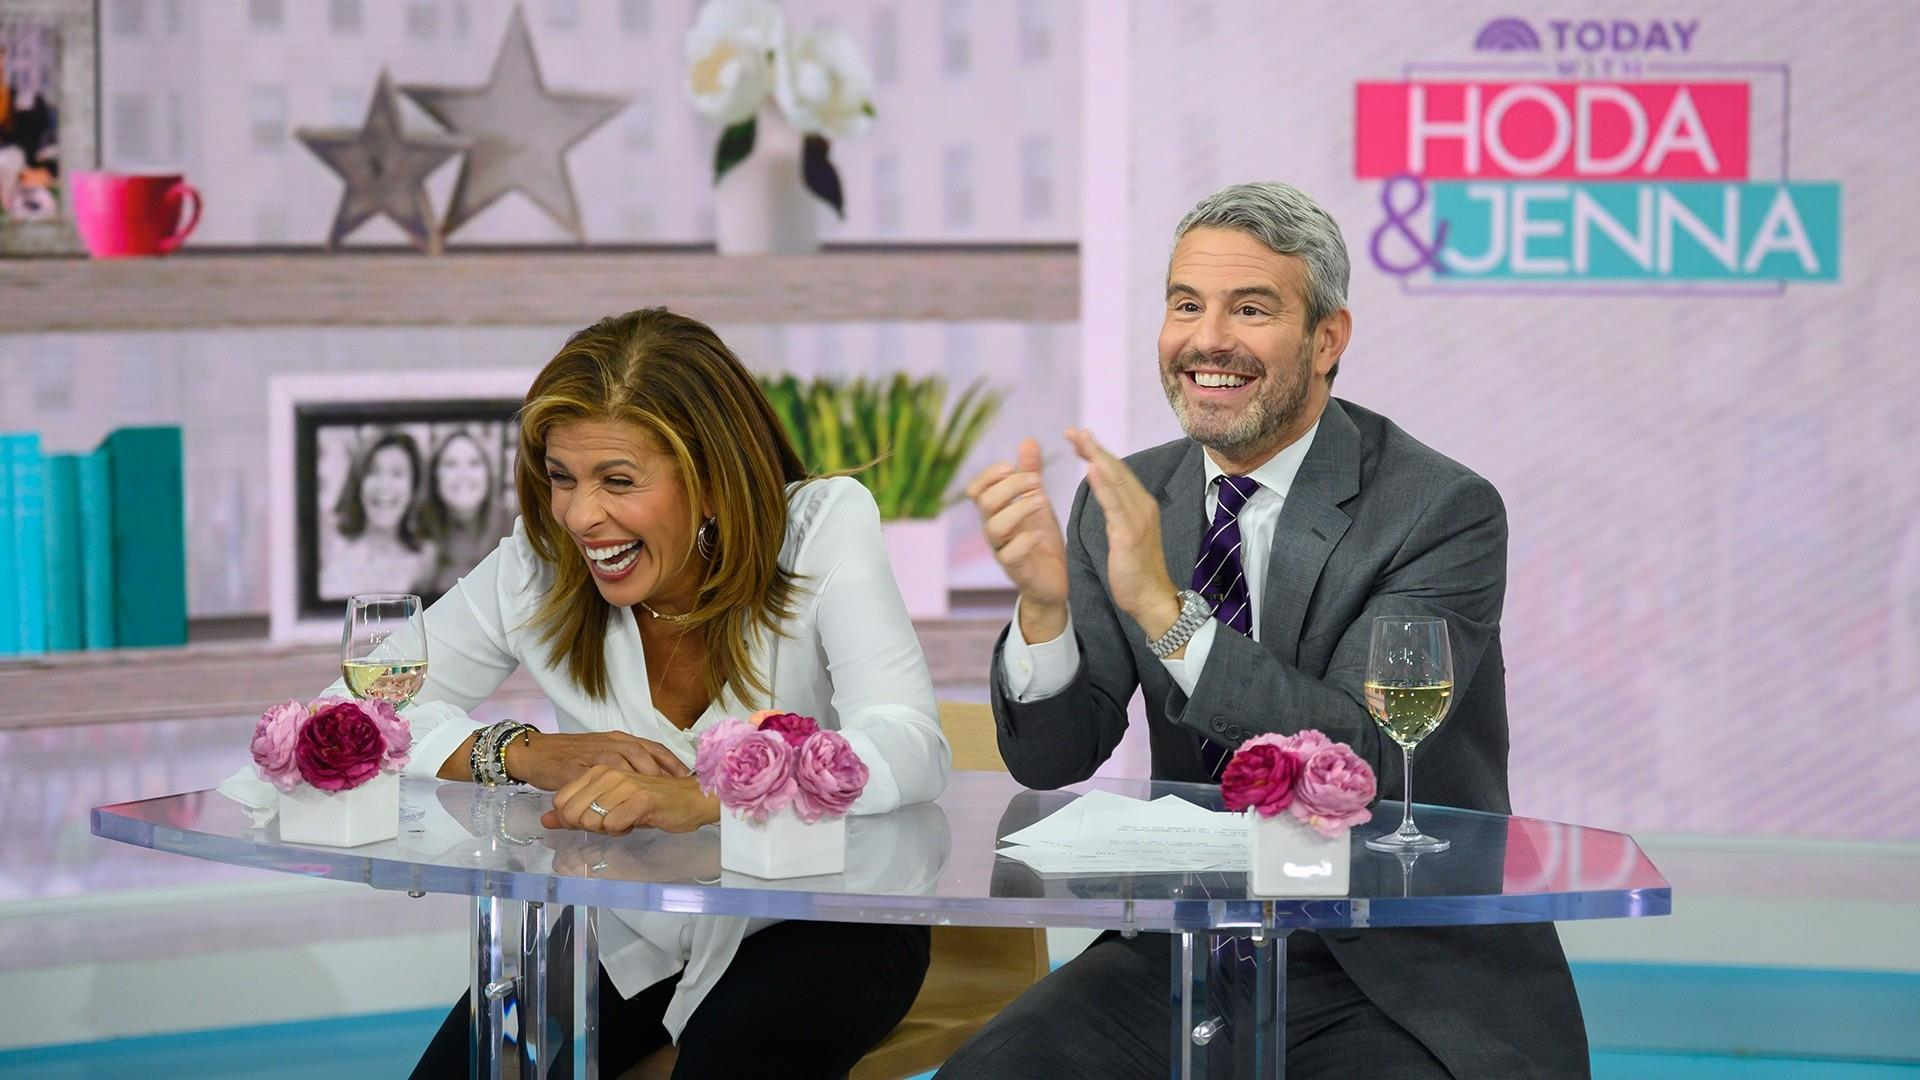 How to deal with a bathroom talker: Andy and Hoda discuss